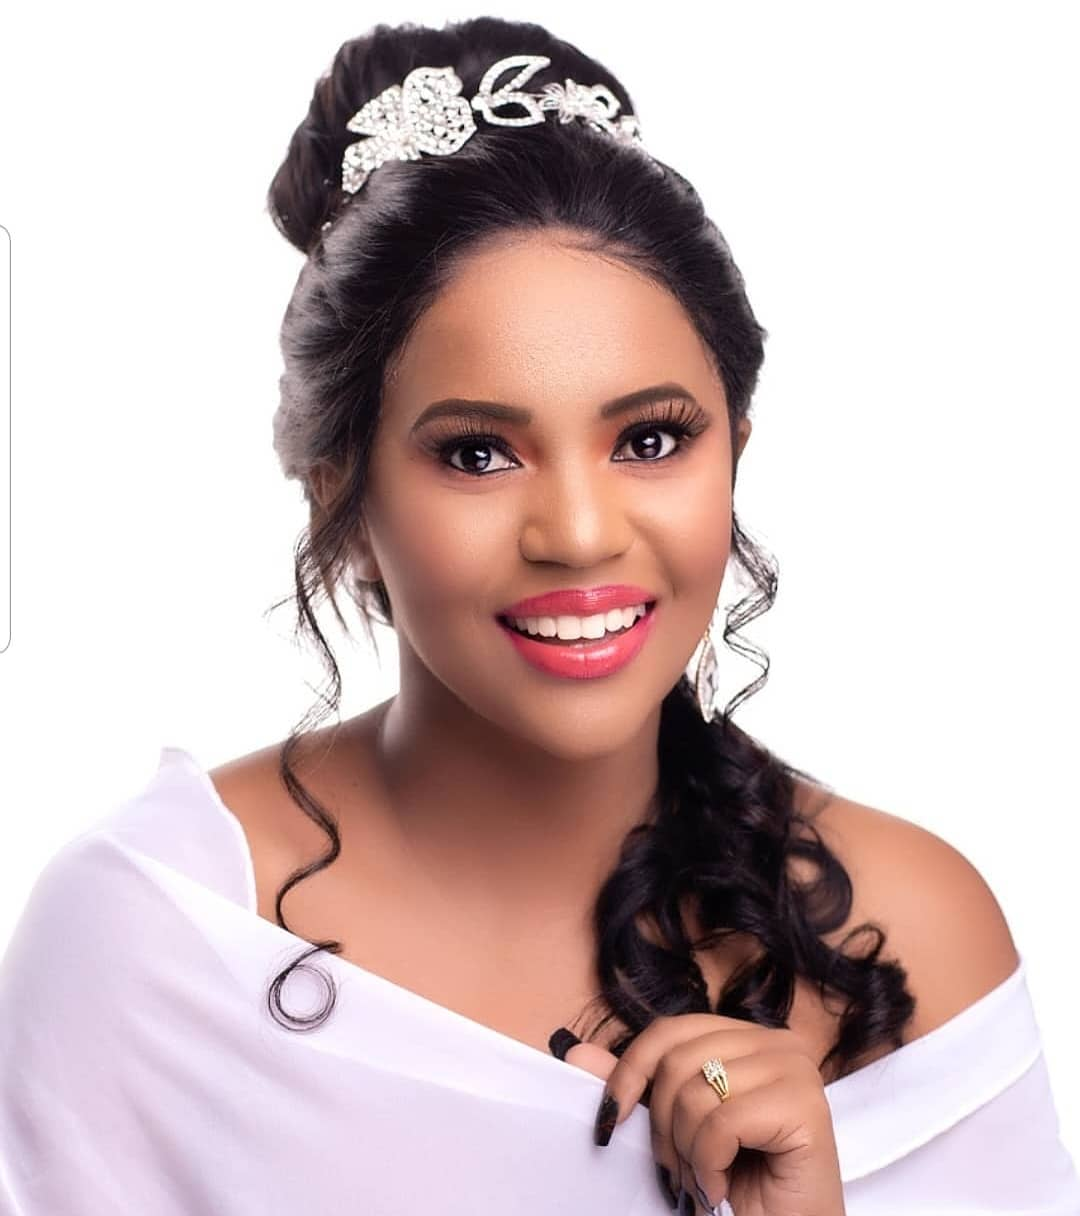 62057332 2647381148623738 4642304967462946437 n - 'She held my hand in the delivery room,' Pierra Makena narrates